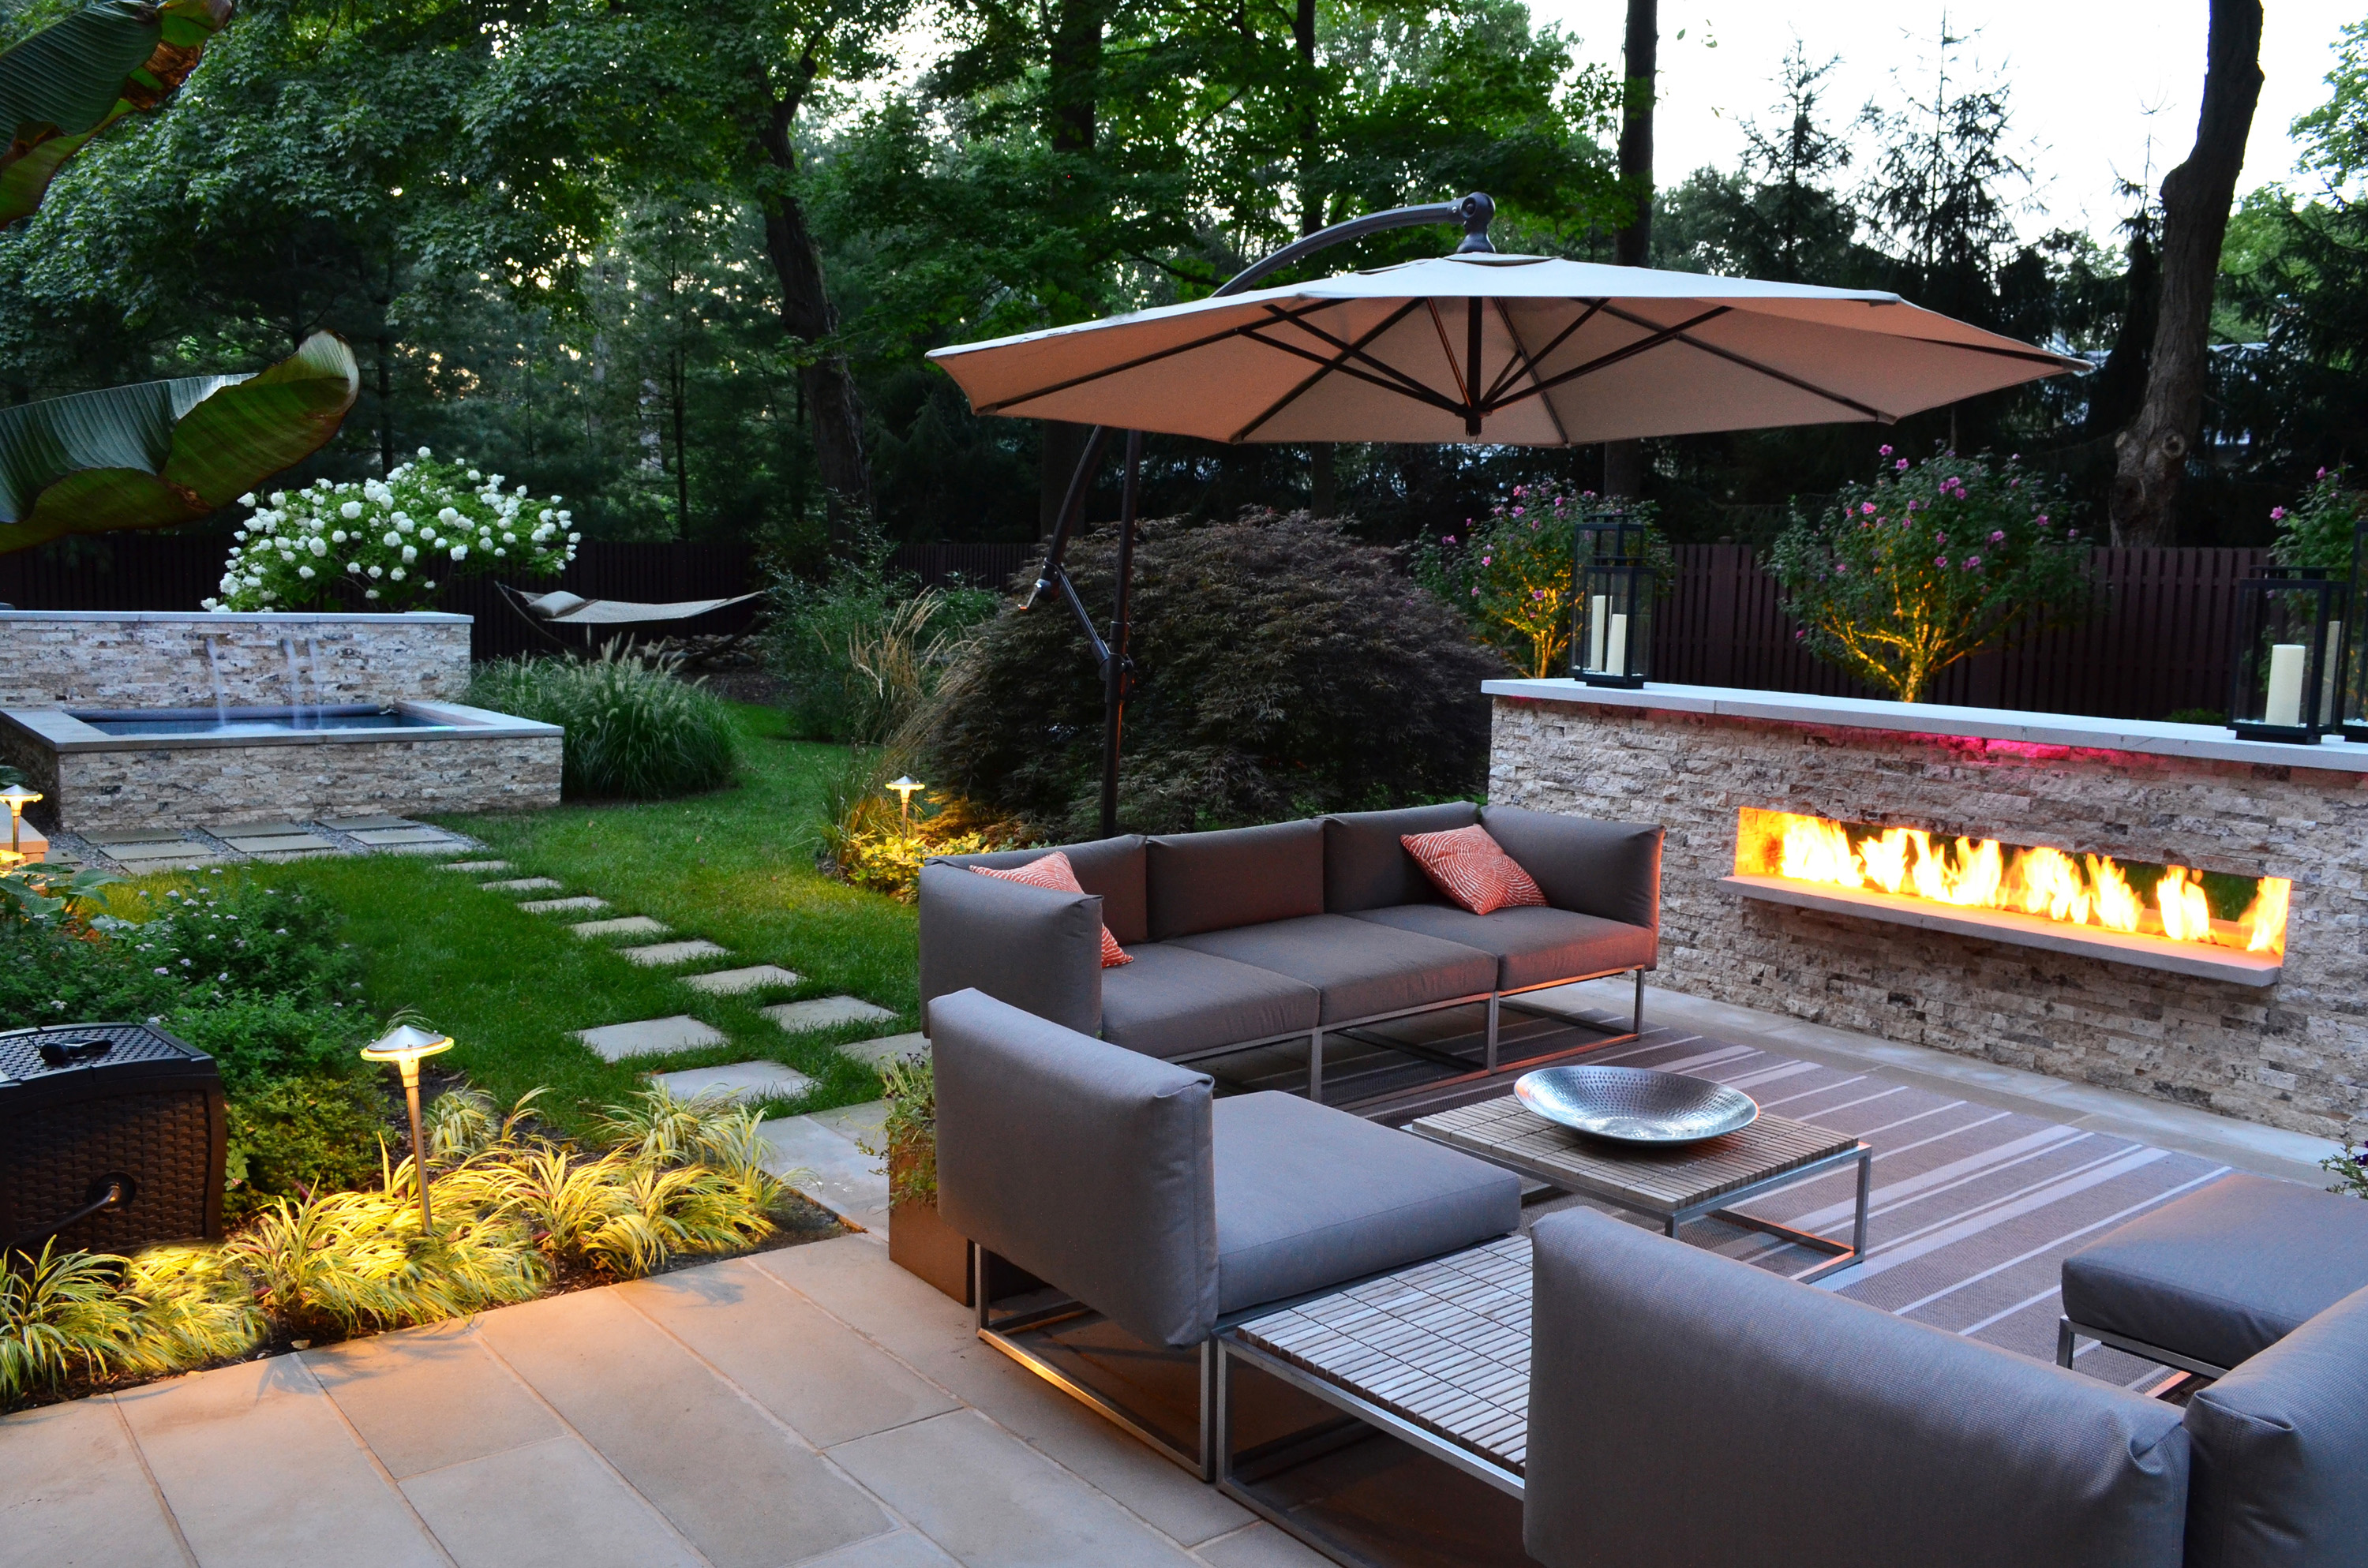 Charming-Modern-Patio-With-Gray-Stone-Outdoor-Fireplace-Also-Cream-Umbrella-As-Well-As-Beautiful-Garden